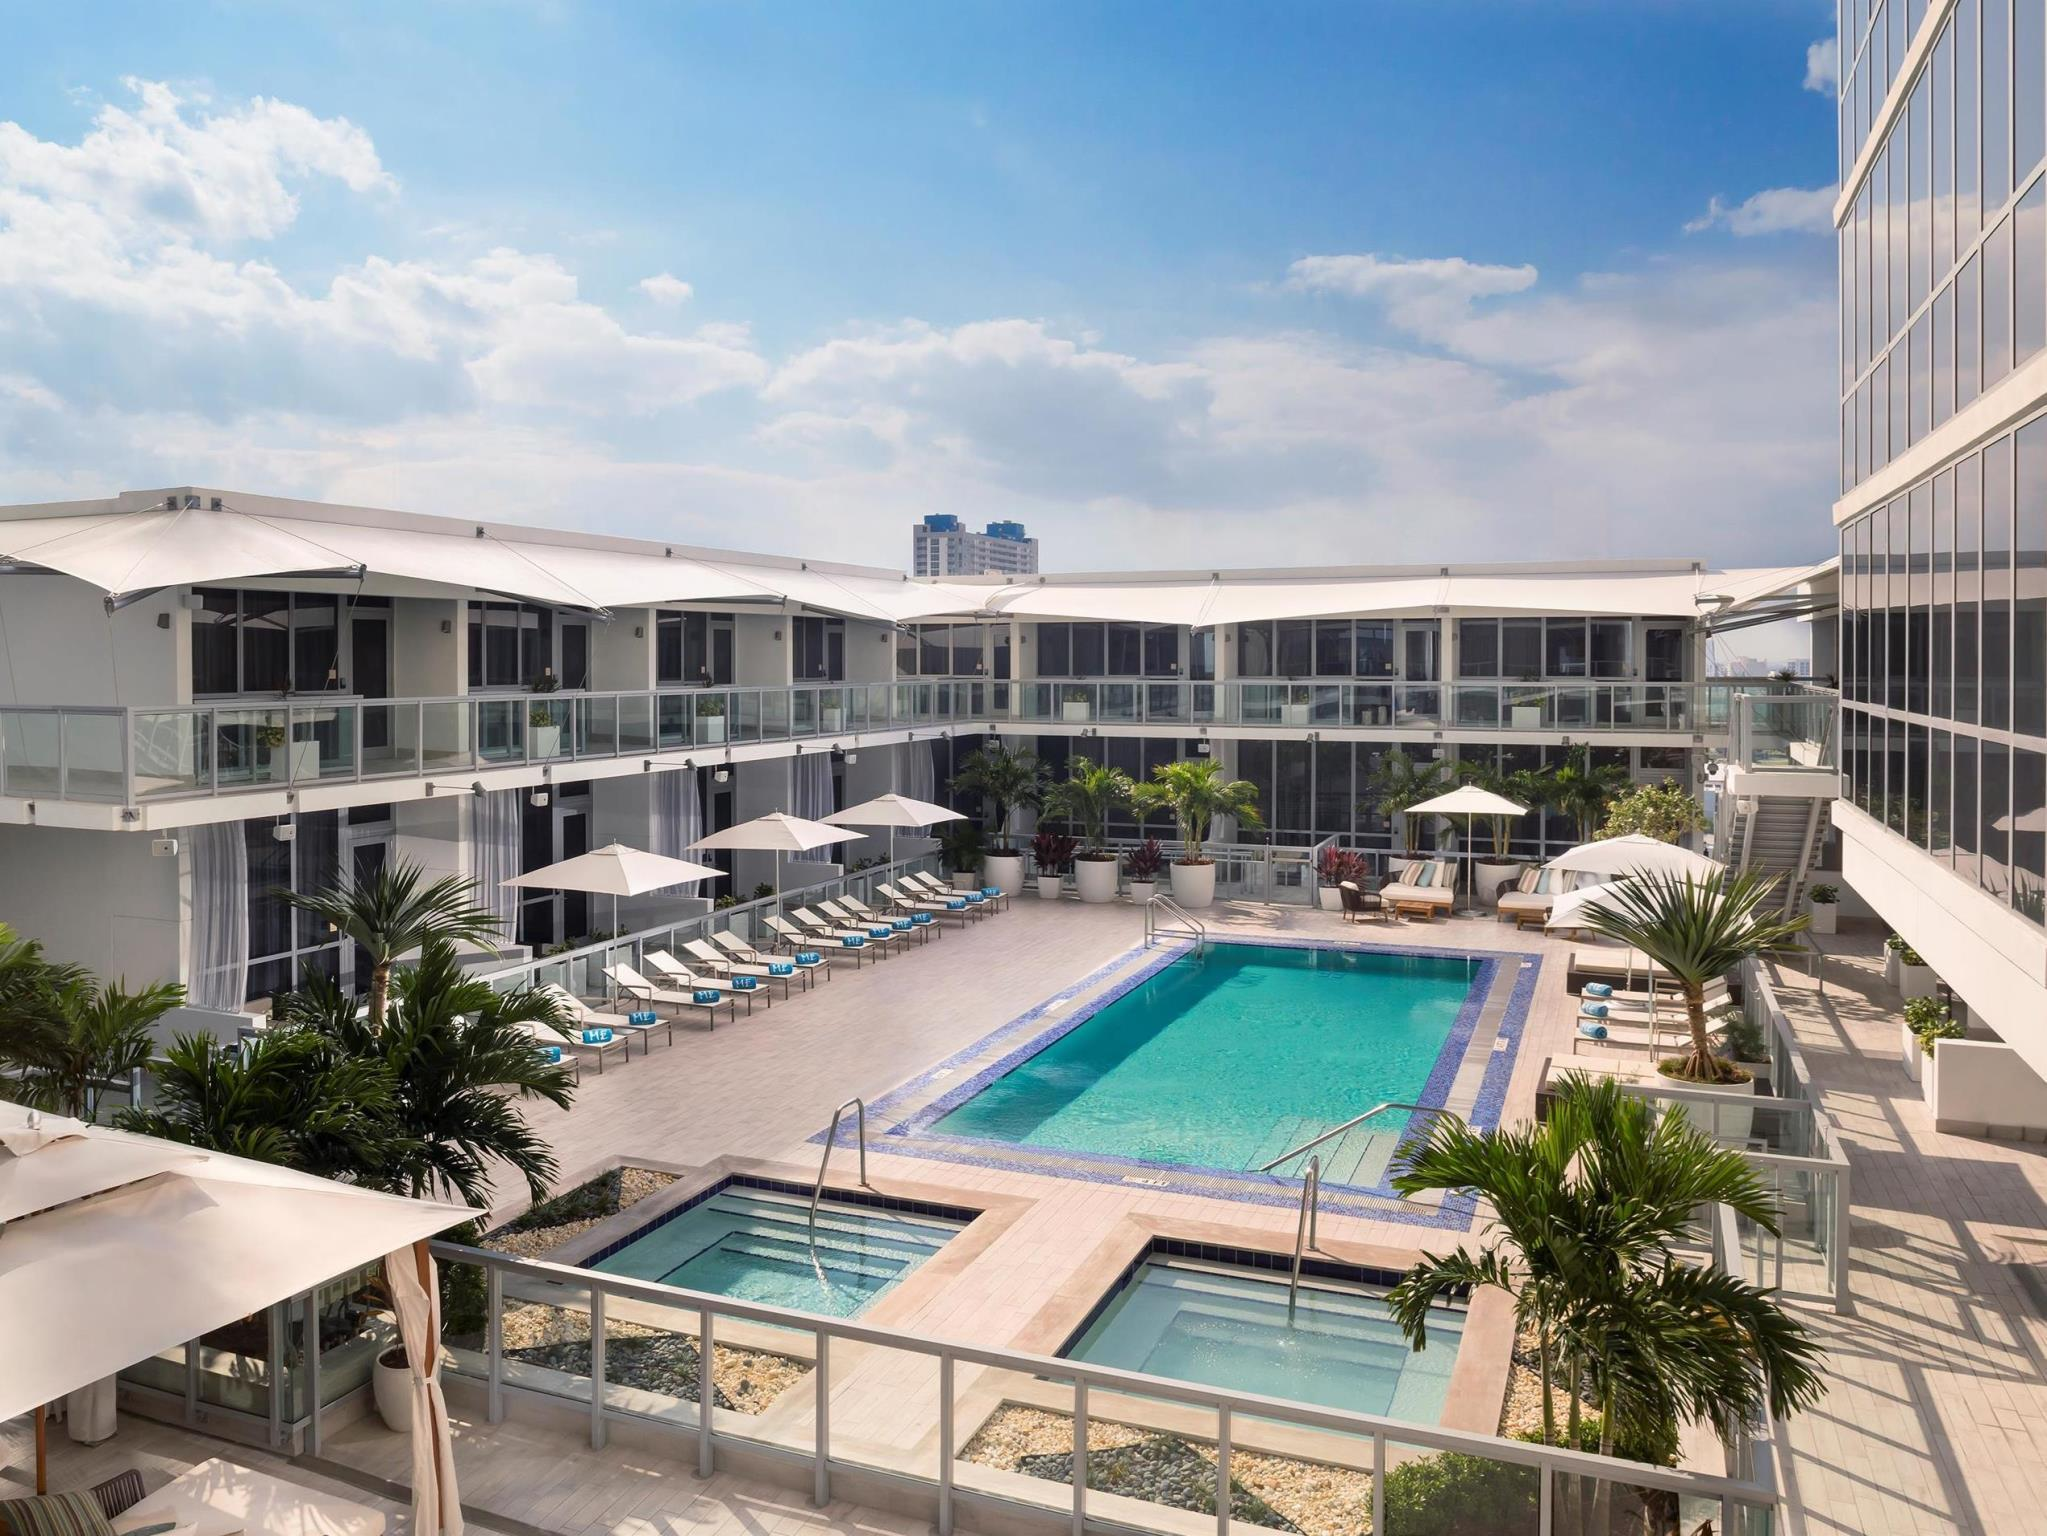 Miami Zwembad The Gabriel Miami Curio Collection By Hilton Miami Boek Een